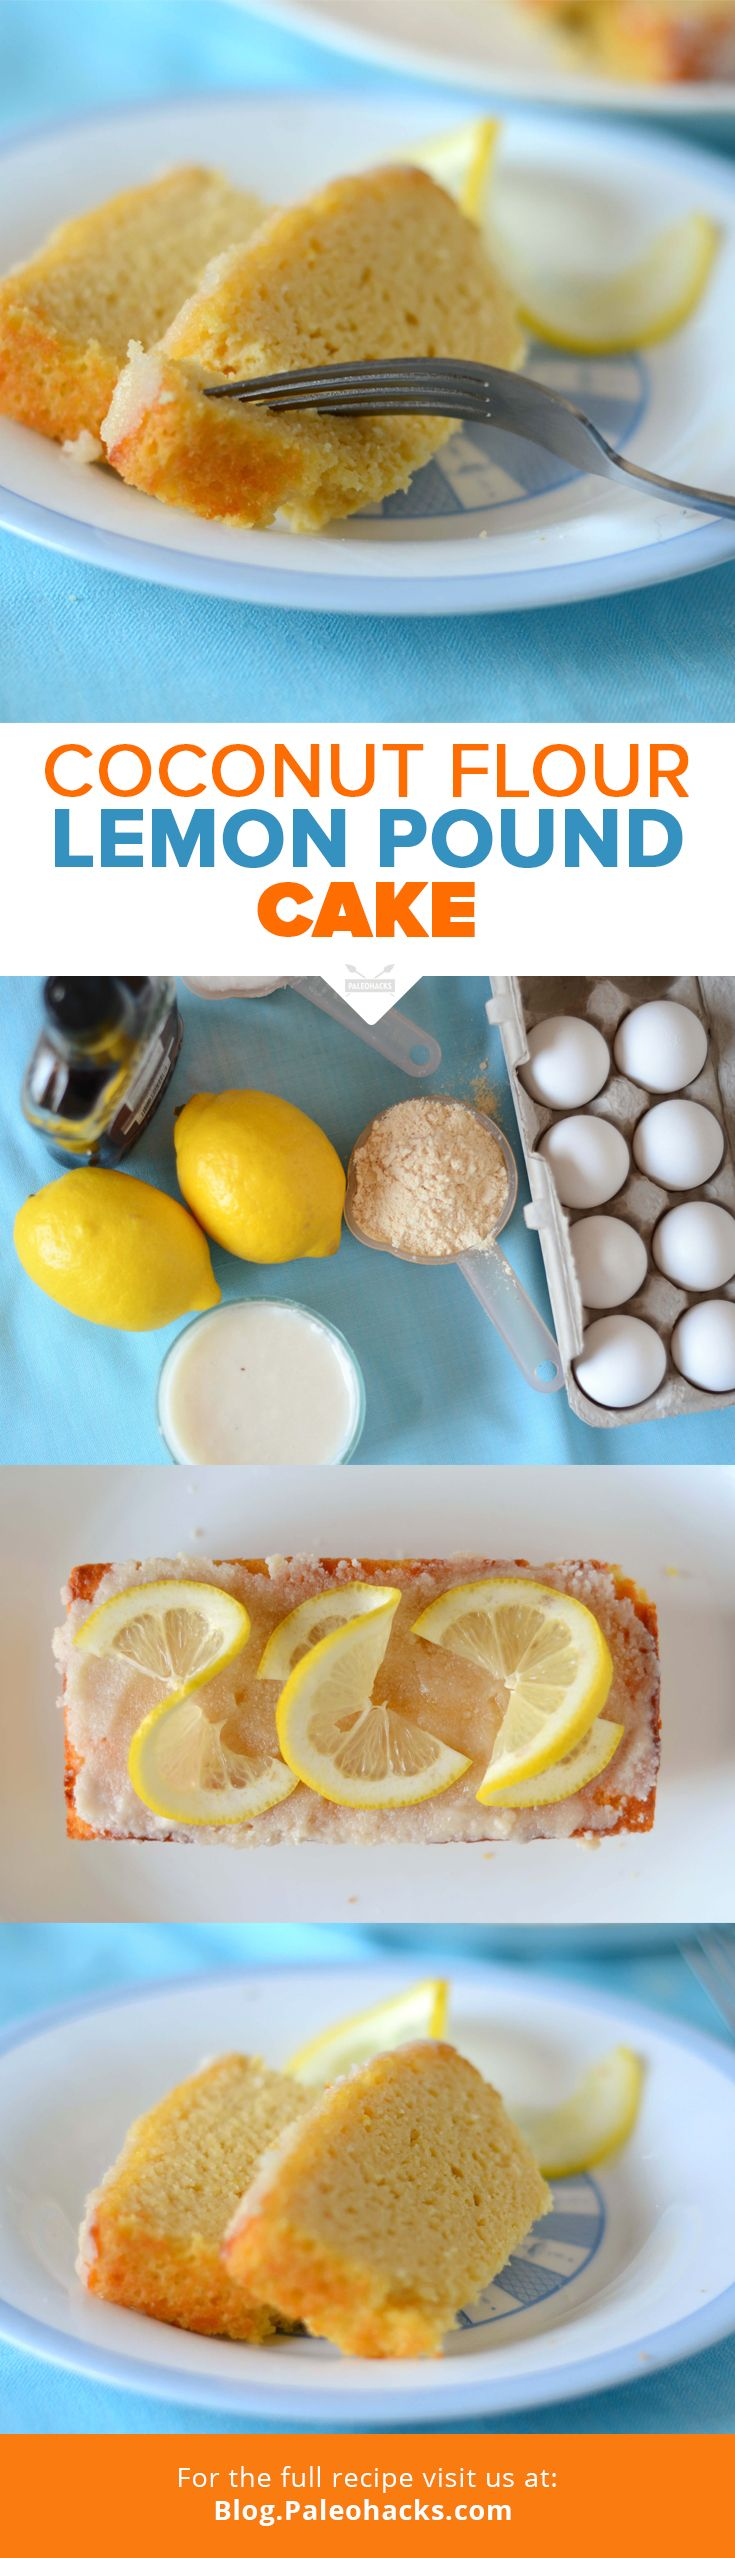 This article is shared with permission from our friends at blog.paleohacks.com. Want a luscious Paleo dessert that's a take on a beloved classic? Try this fluffy and soft lemon pound cake bursting with lemon flavor! (adsbygoogle = window.adsbygoogle || []).push({}); A love for coconut In addition to the sour citrus flavour...More